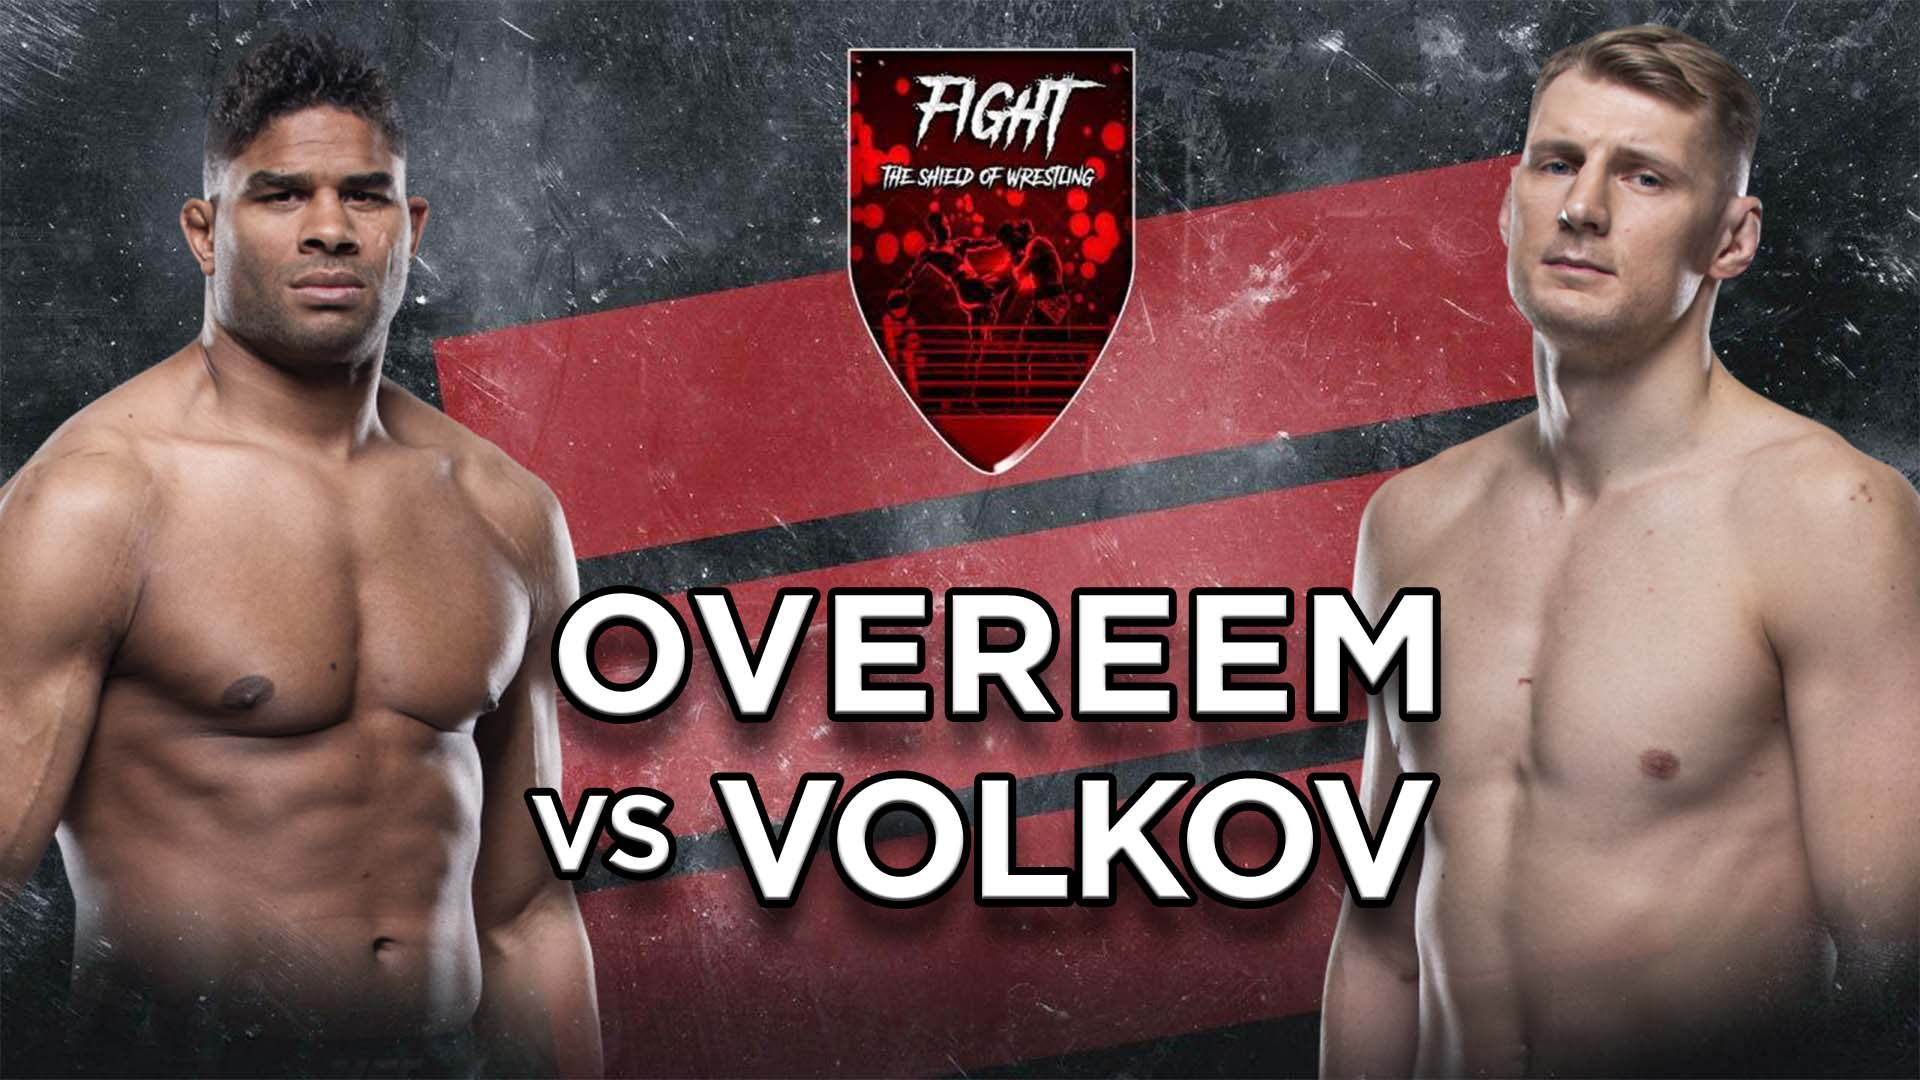 Anteprima UFC Fight Night: Overeem vs Volkov - card completa